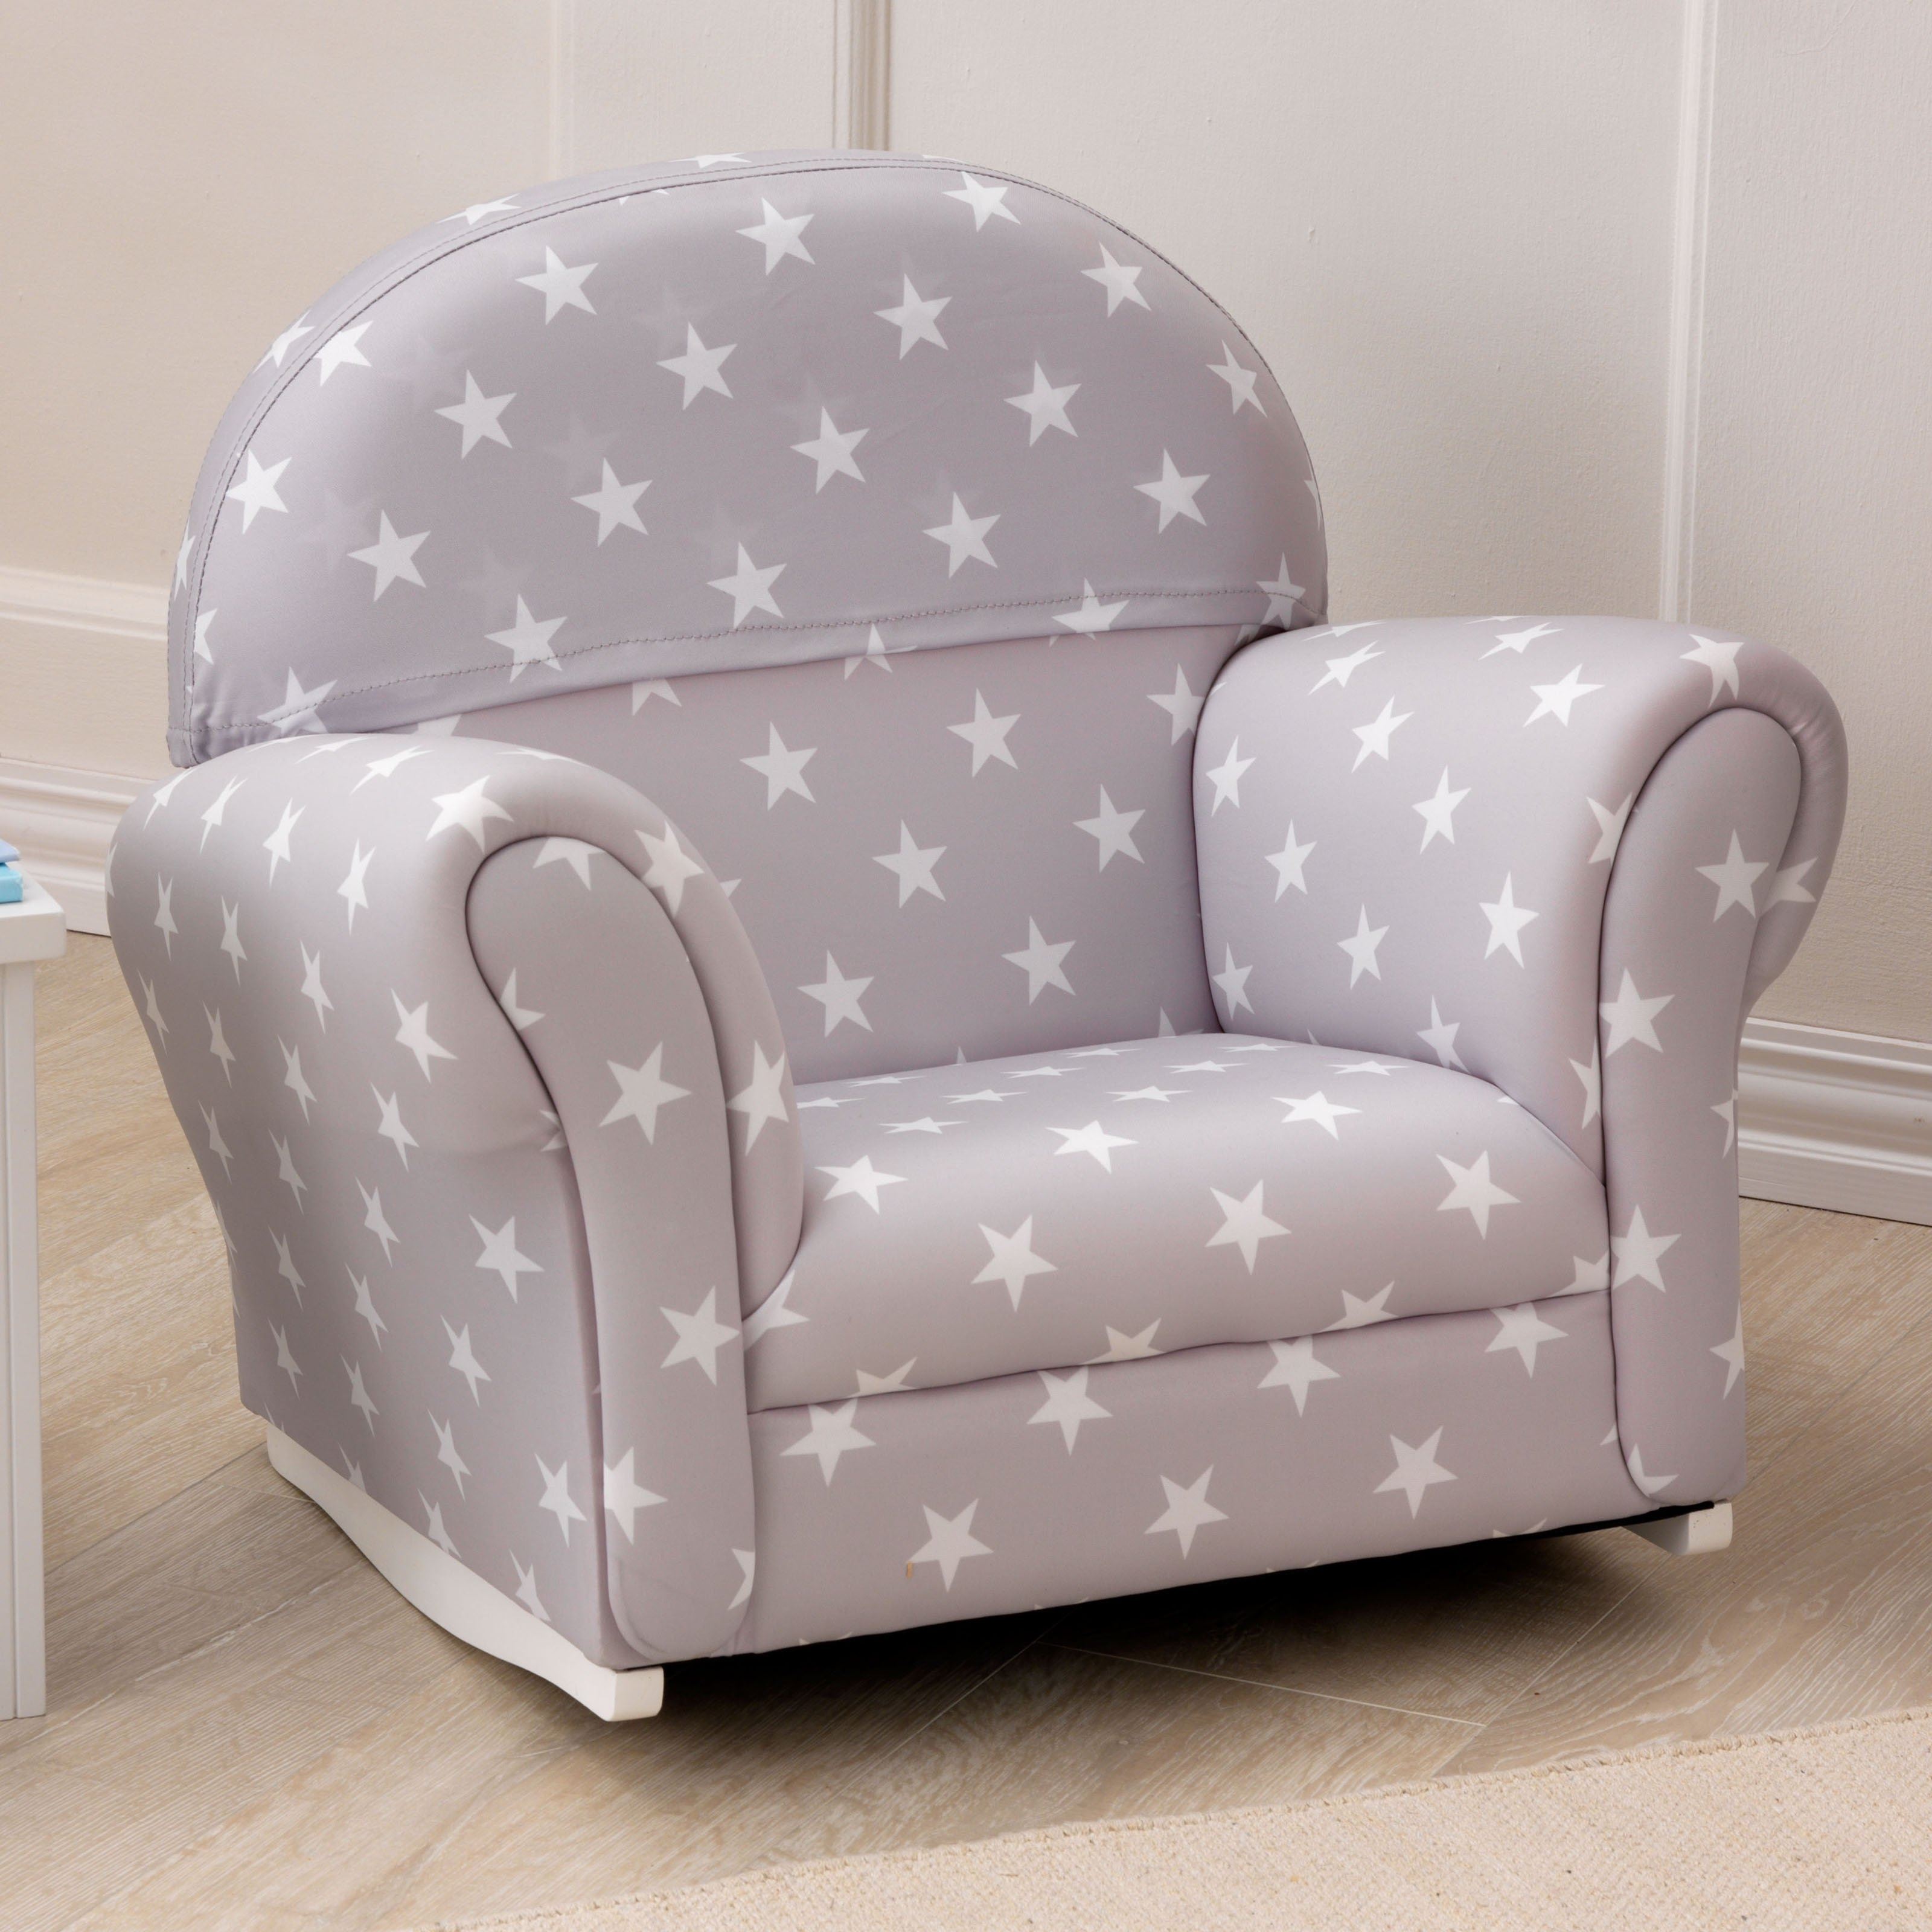 Widely Used Armchair : Ikea Kids Stool Kids Chairs Ikea Toddler Chair Ikea With Personalized Kids Chairs And Sofas (View 6 of 20)